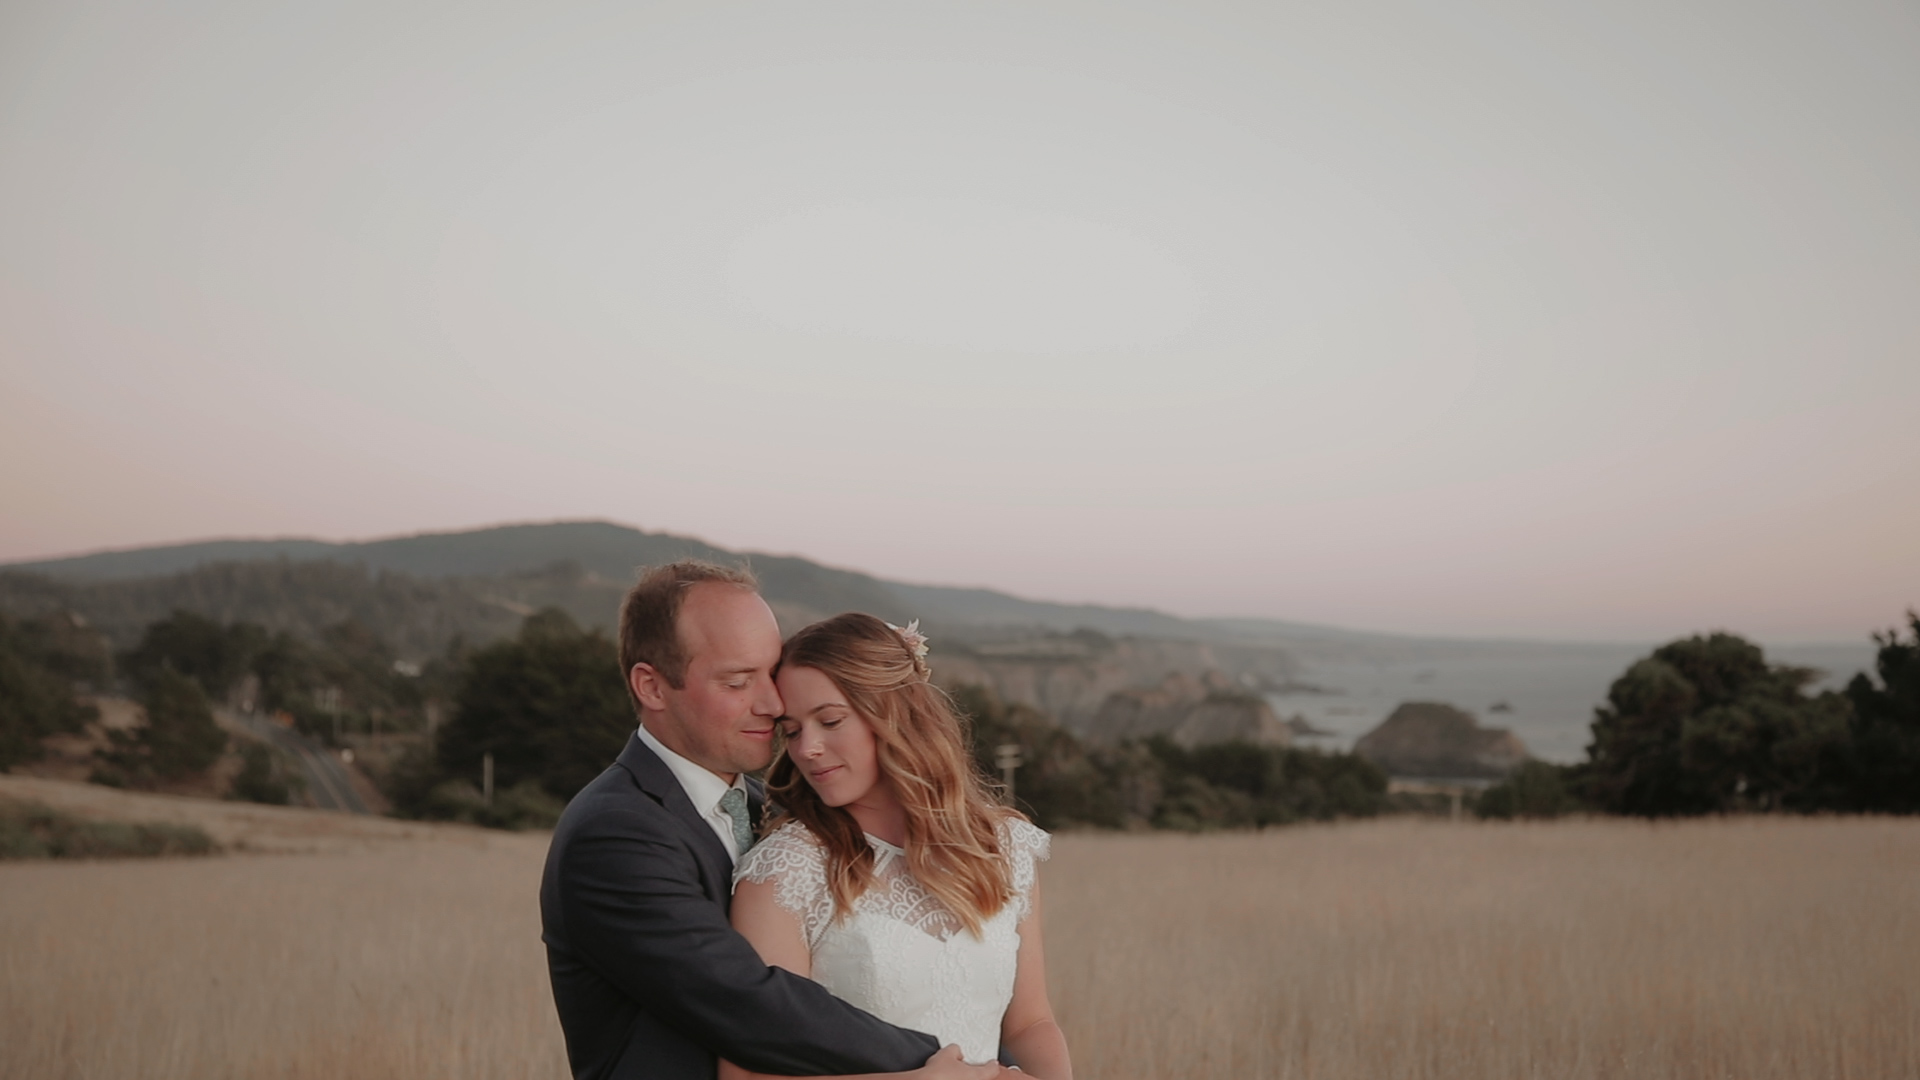 Ali + Sean  | Elk, California | Cuffey's Cove